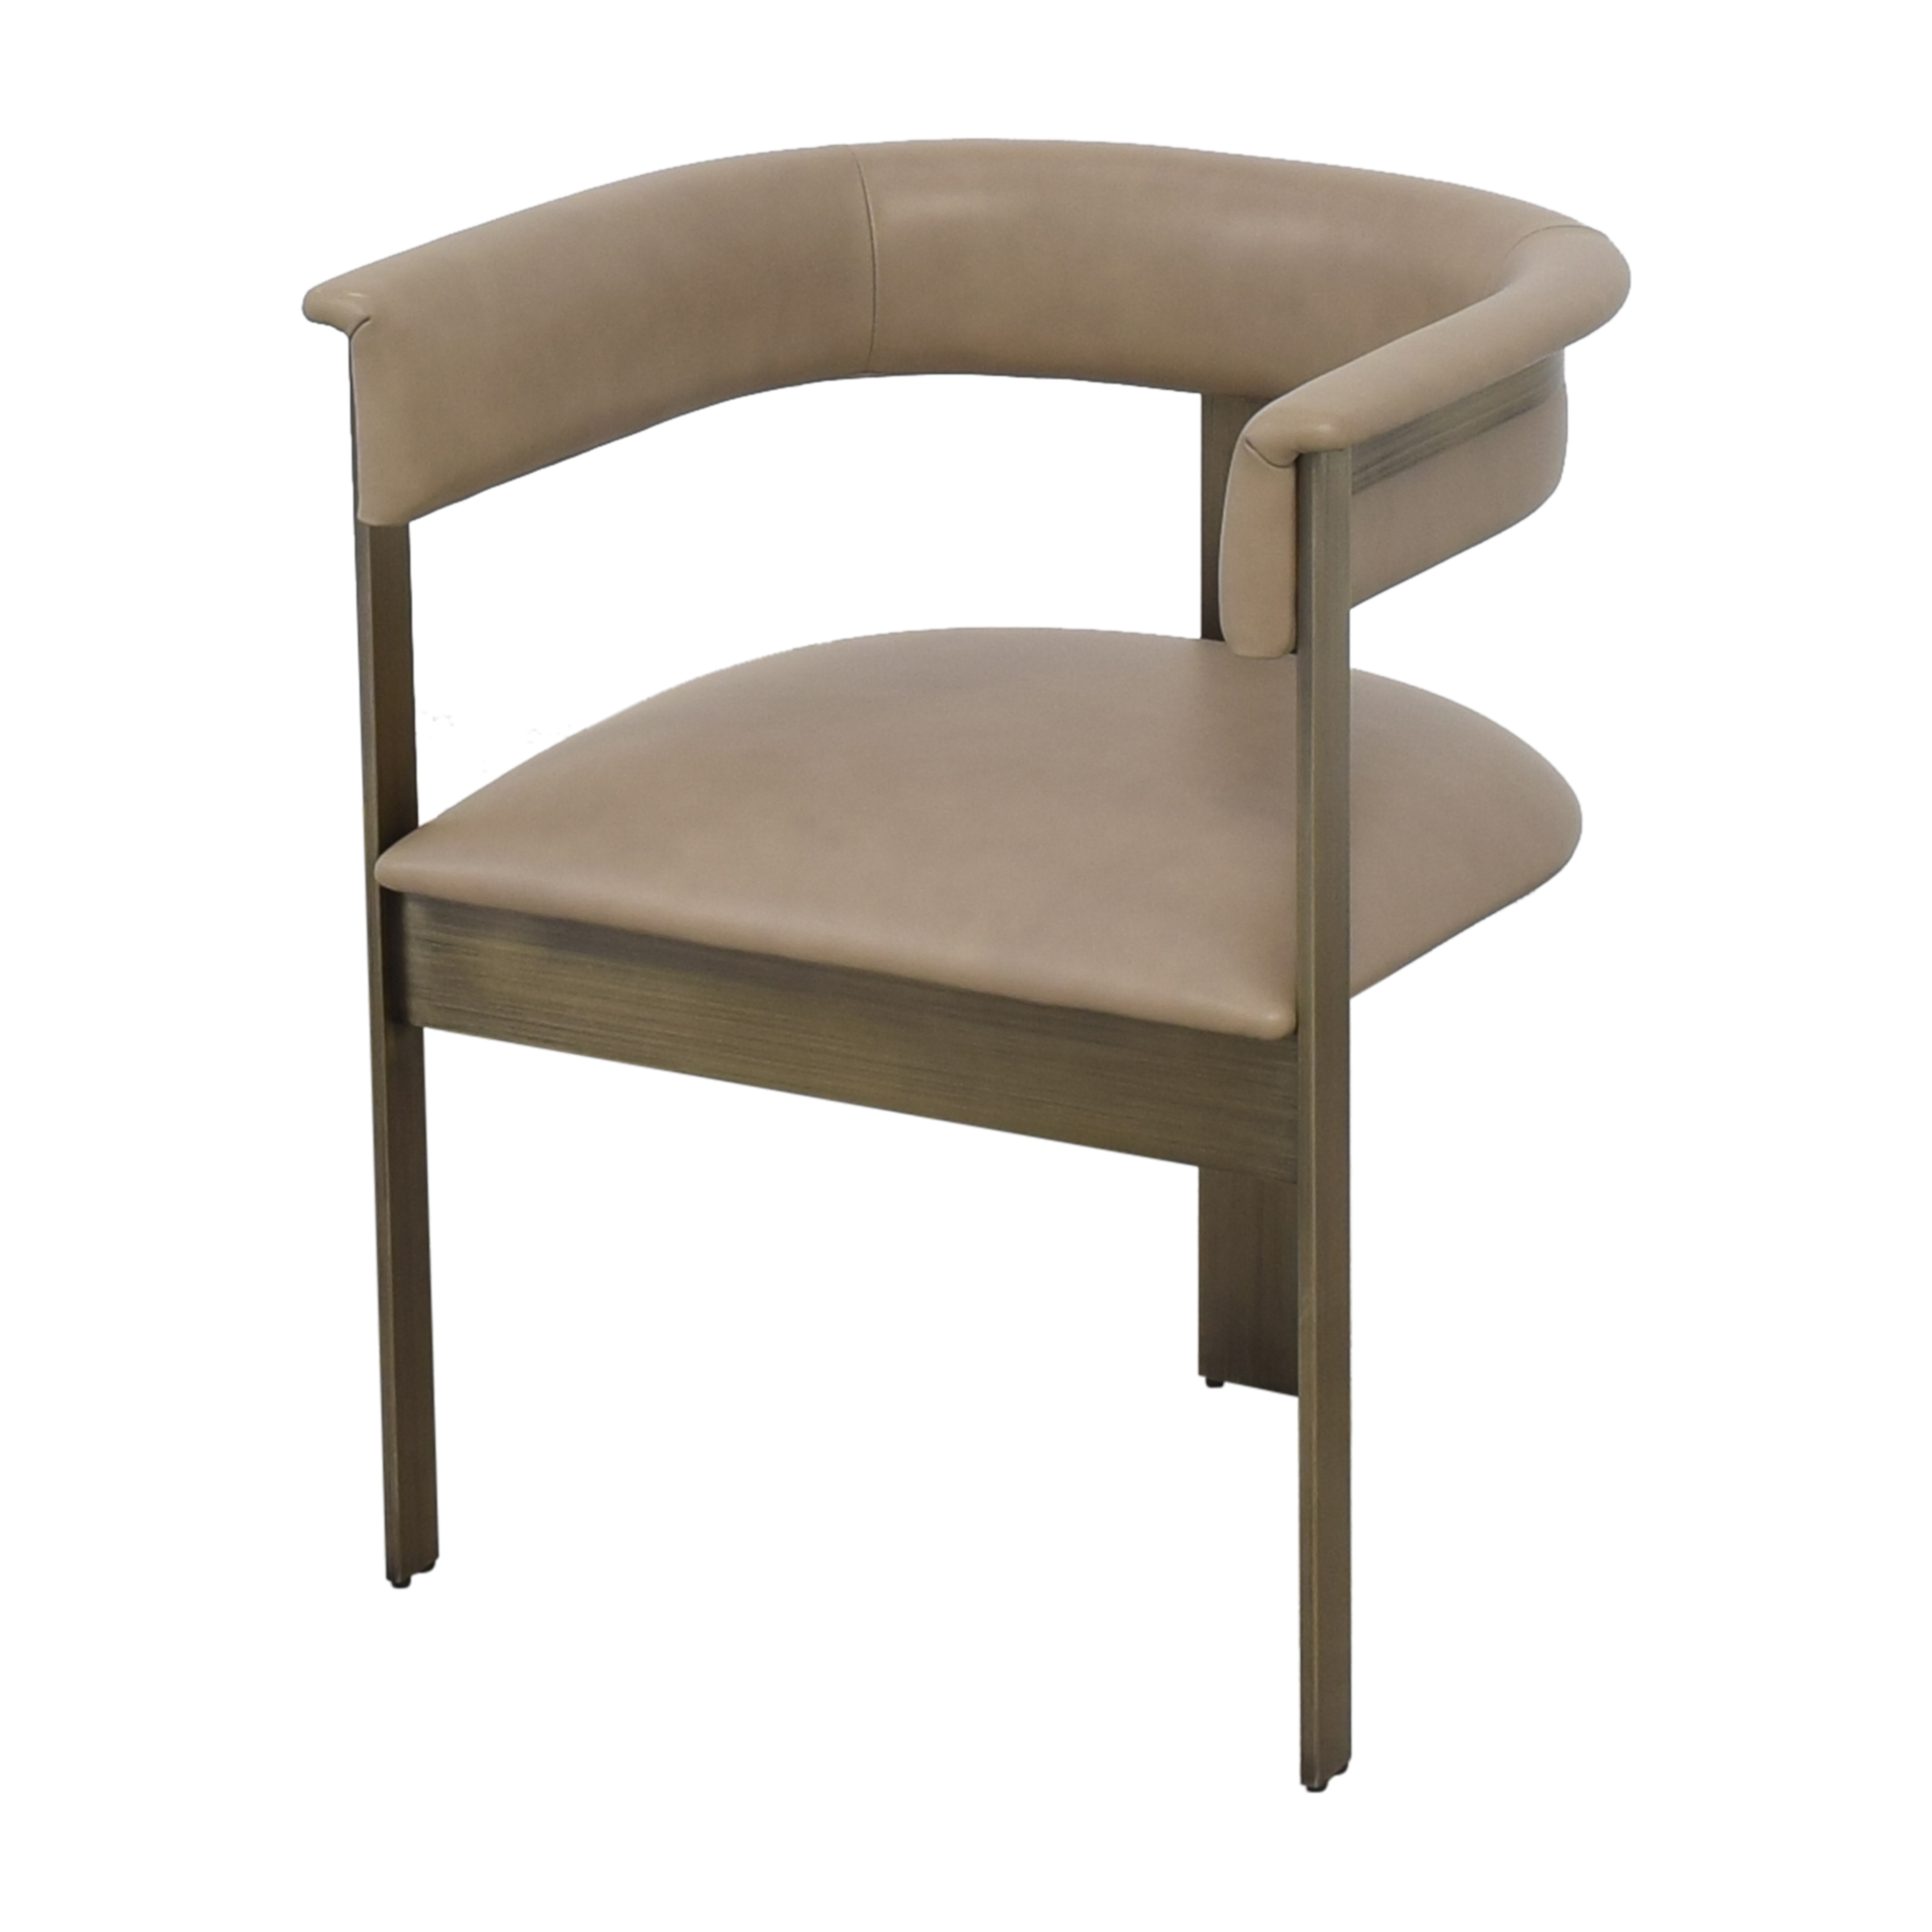 Interlude Home Interlude Home Darcy Dining Arm Chairs beige